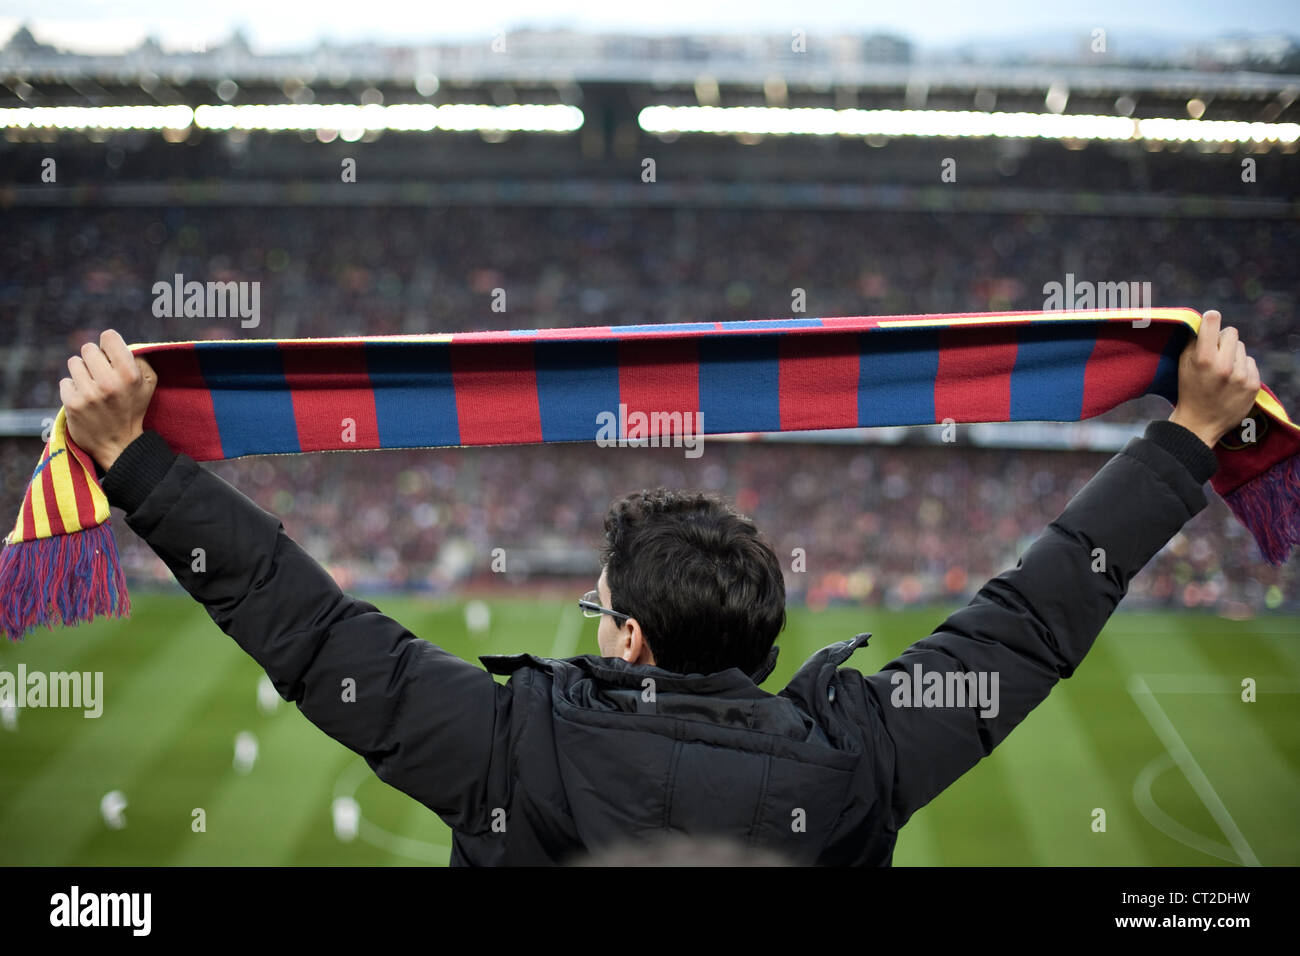 FC Barcelona fan holding a scarf with the colours of his team during a match in Camp Nou stadium - Stock Image